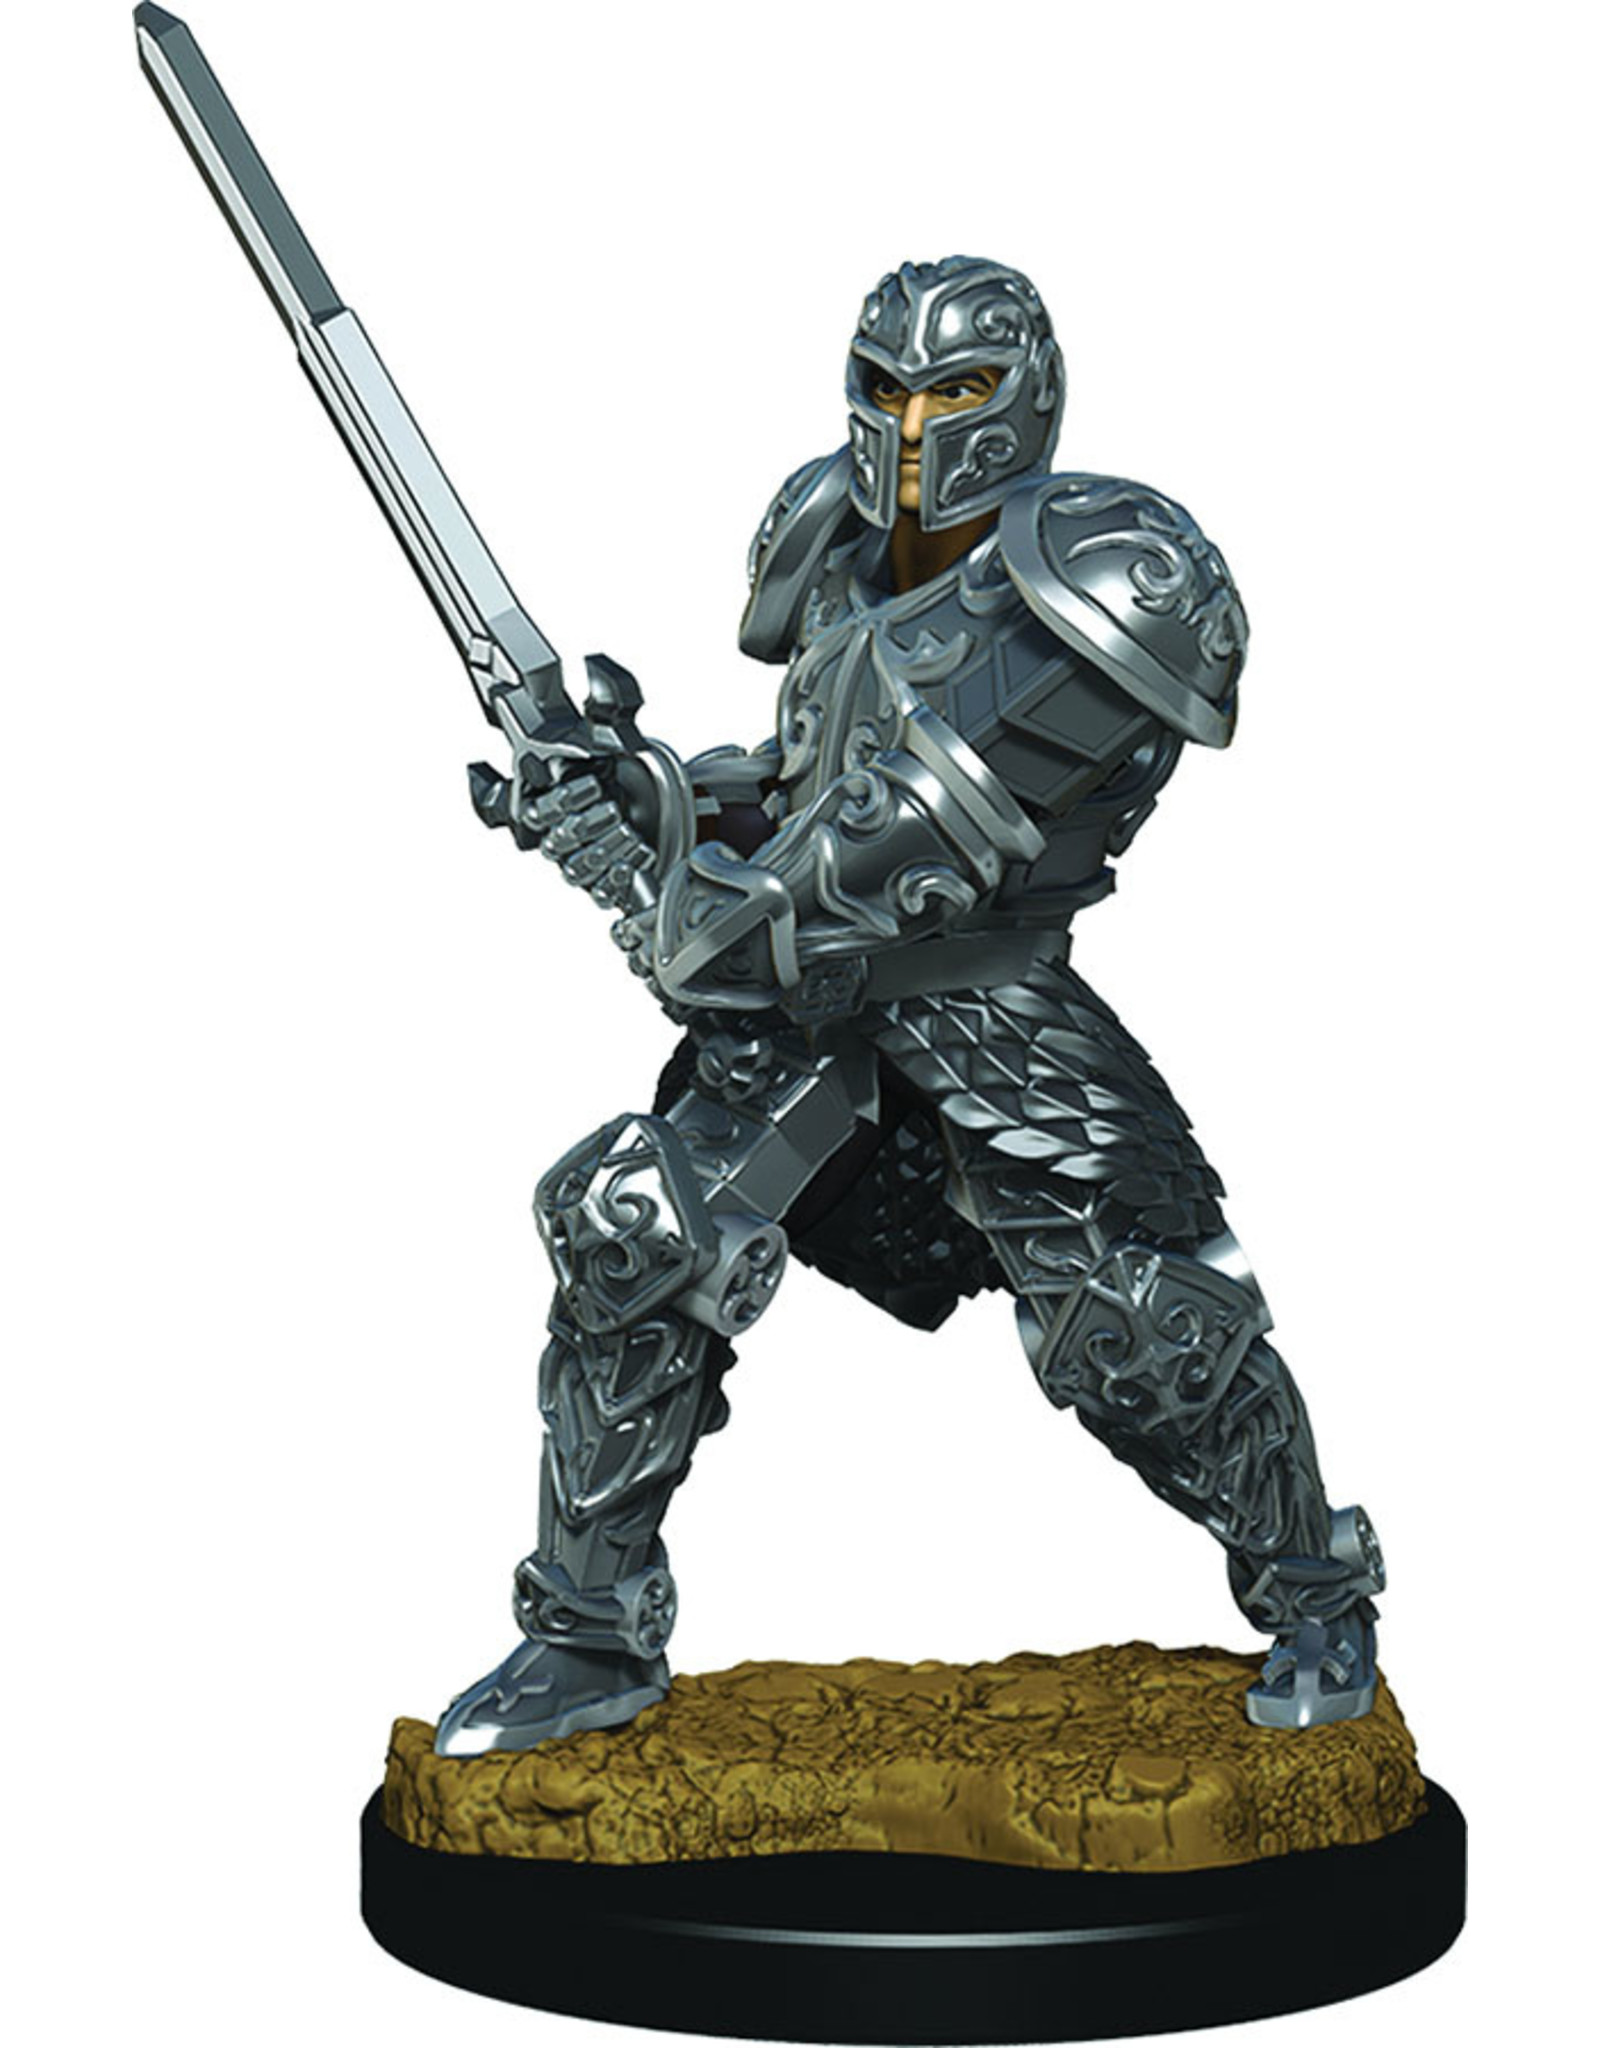 WizKids Dungeons & Dragons Fantasy Miniatures: Icons of the Realms Premium Figures W3 Human Male Fighter